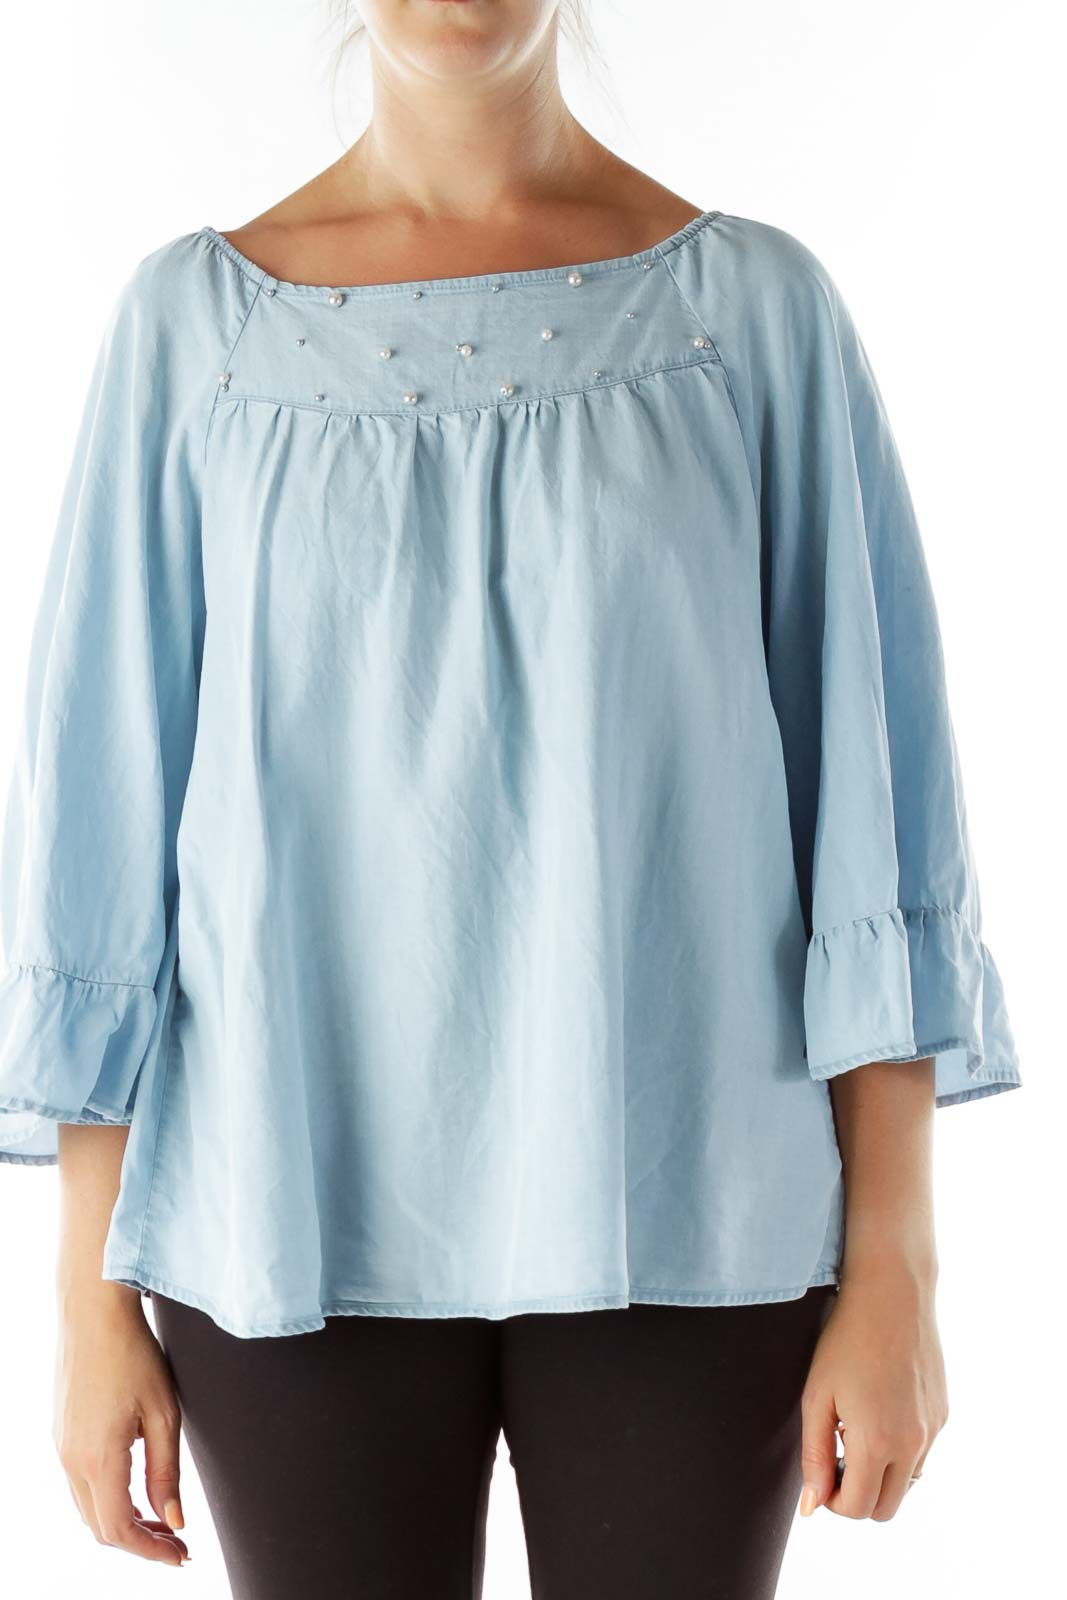 Blue Pearl Beaded Off-Shoulder Blouse